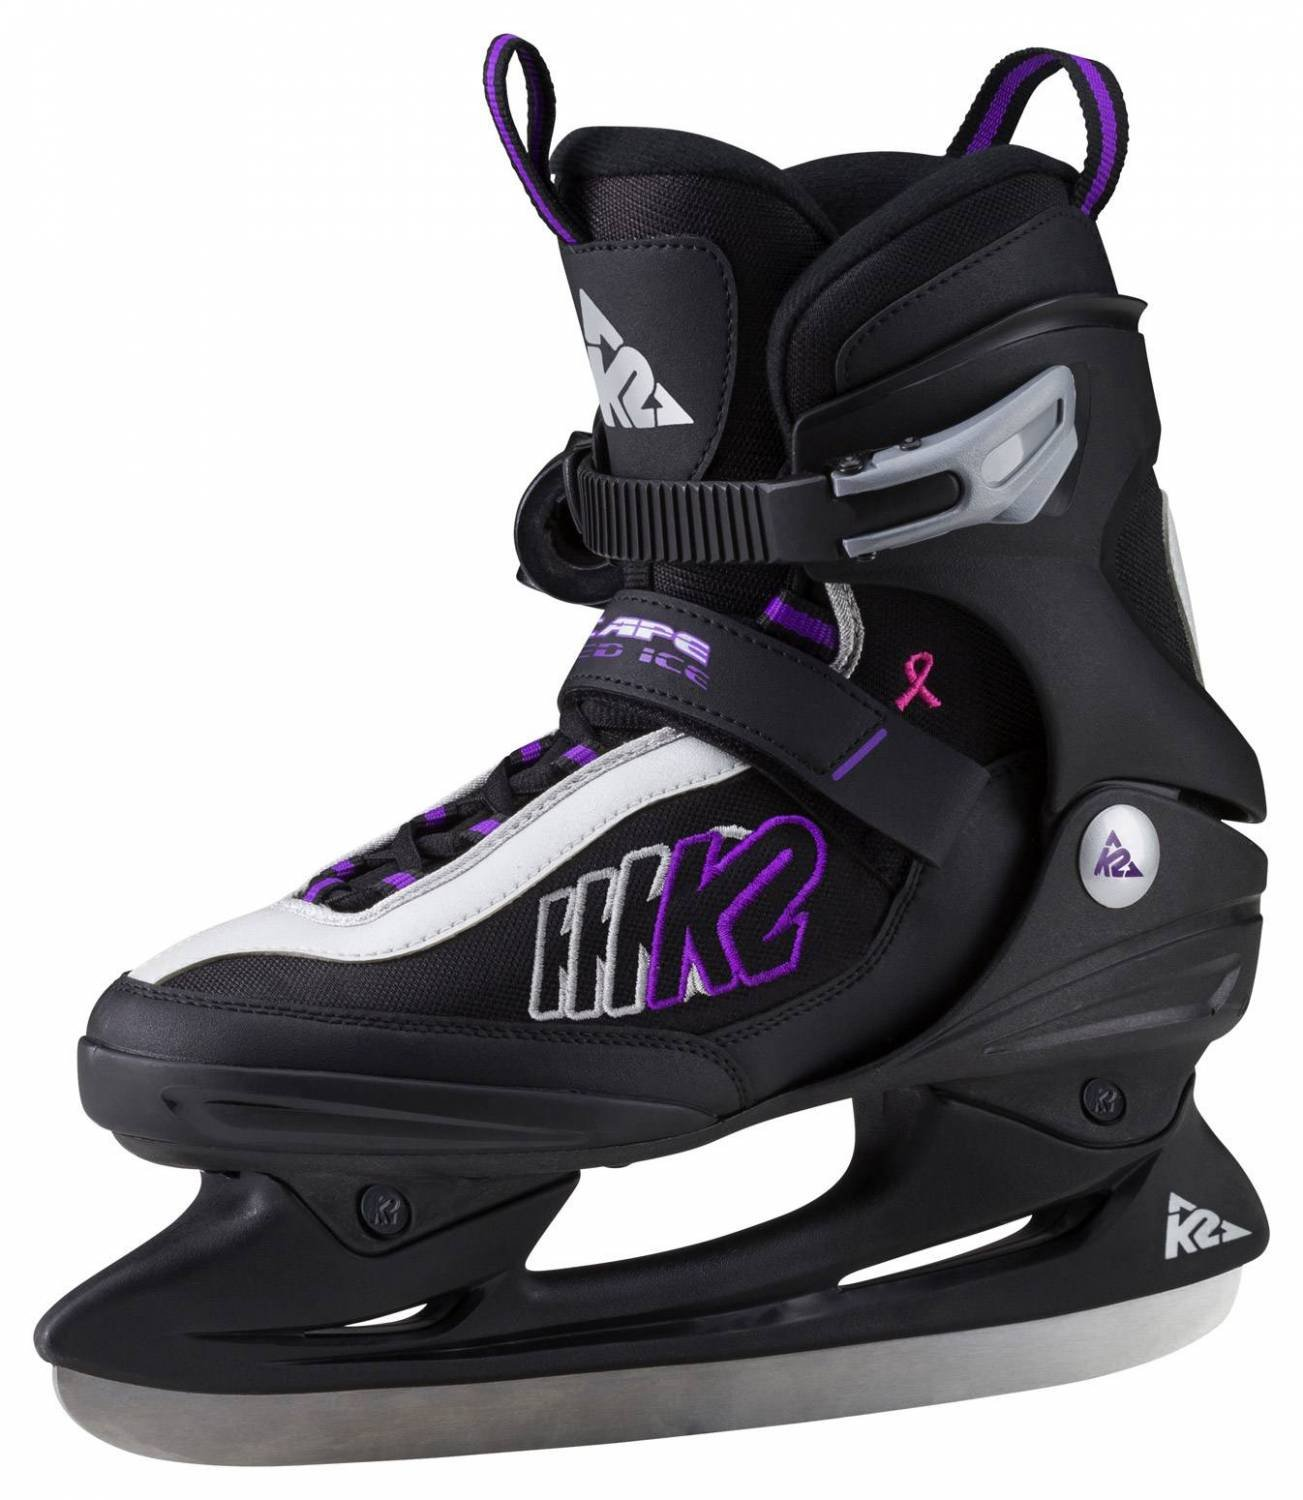 K2 Speed Ice Women's Ice Hockey Boots - Complete Escape W 10.5 Ice Skates - Black, 10.5